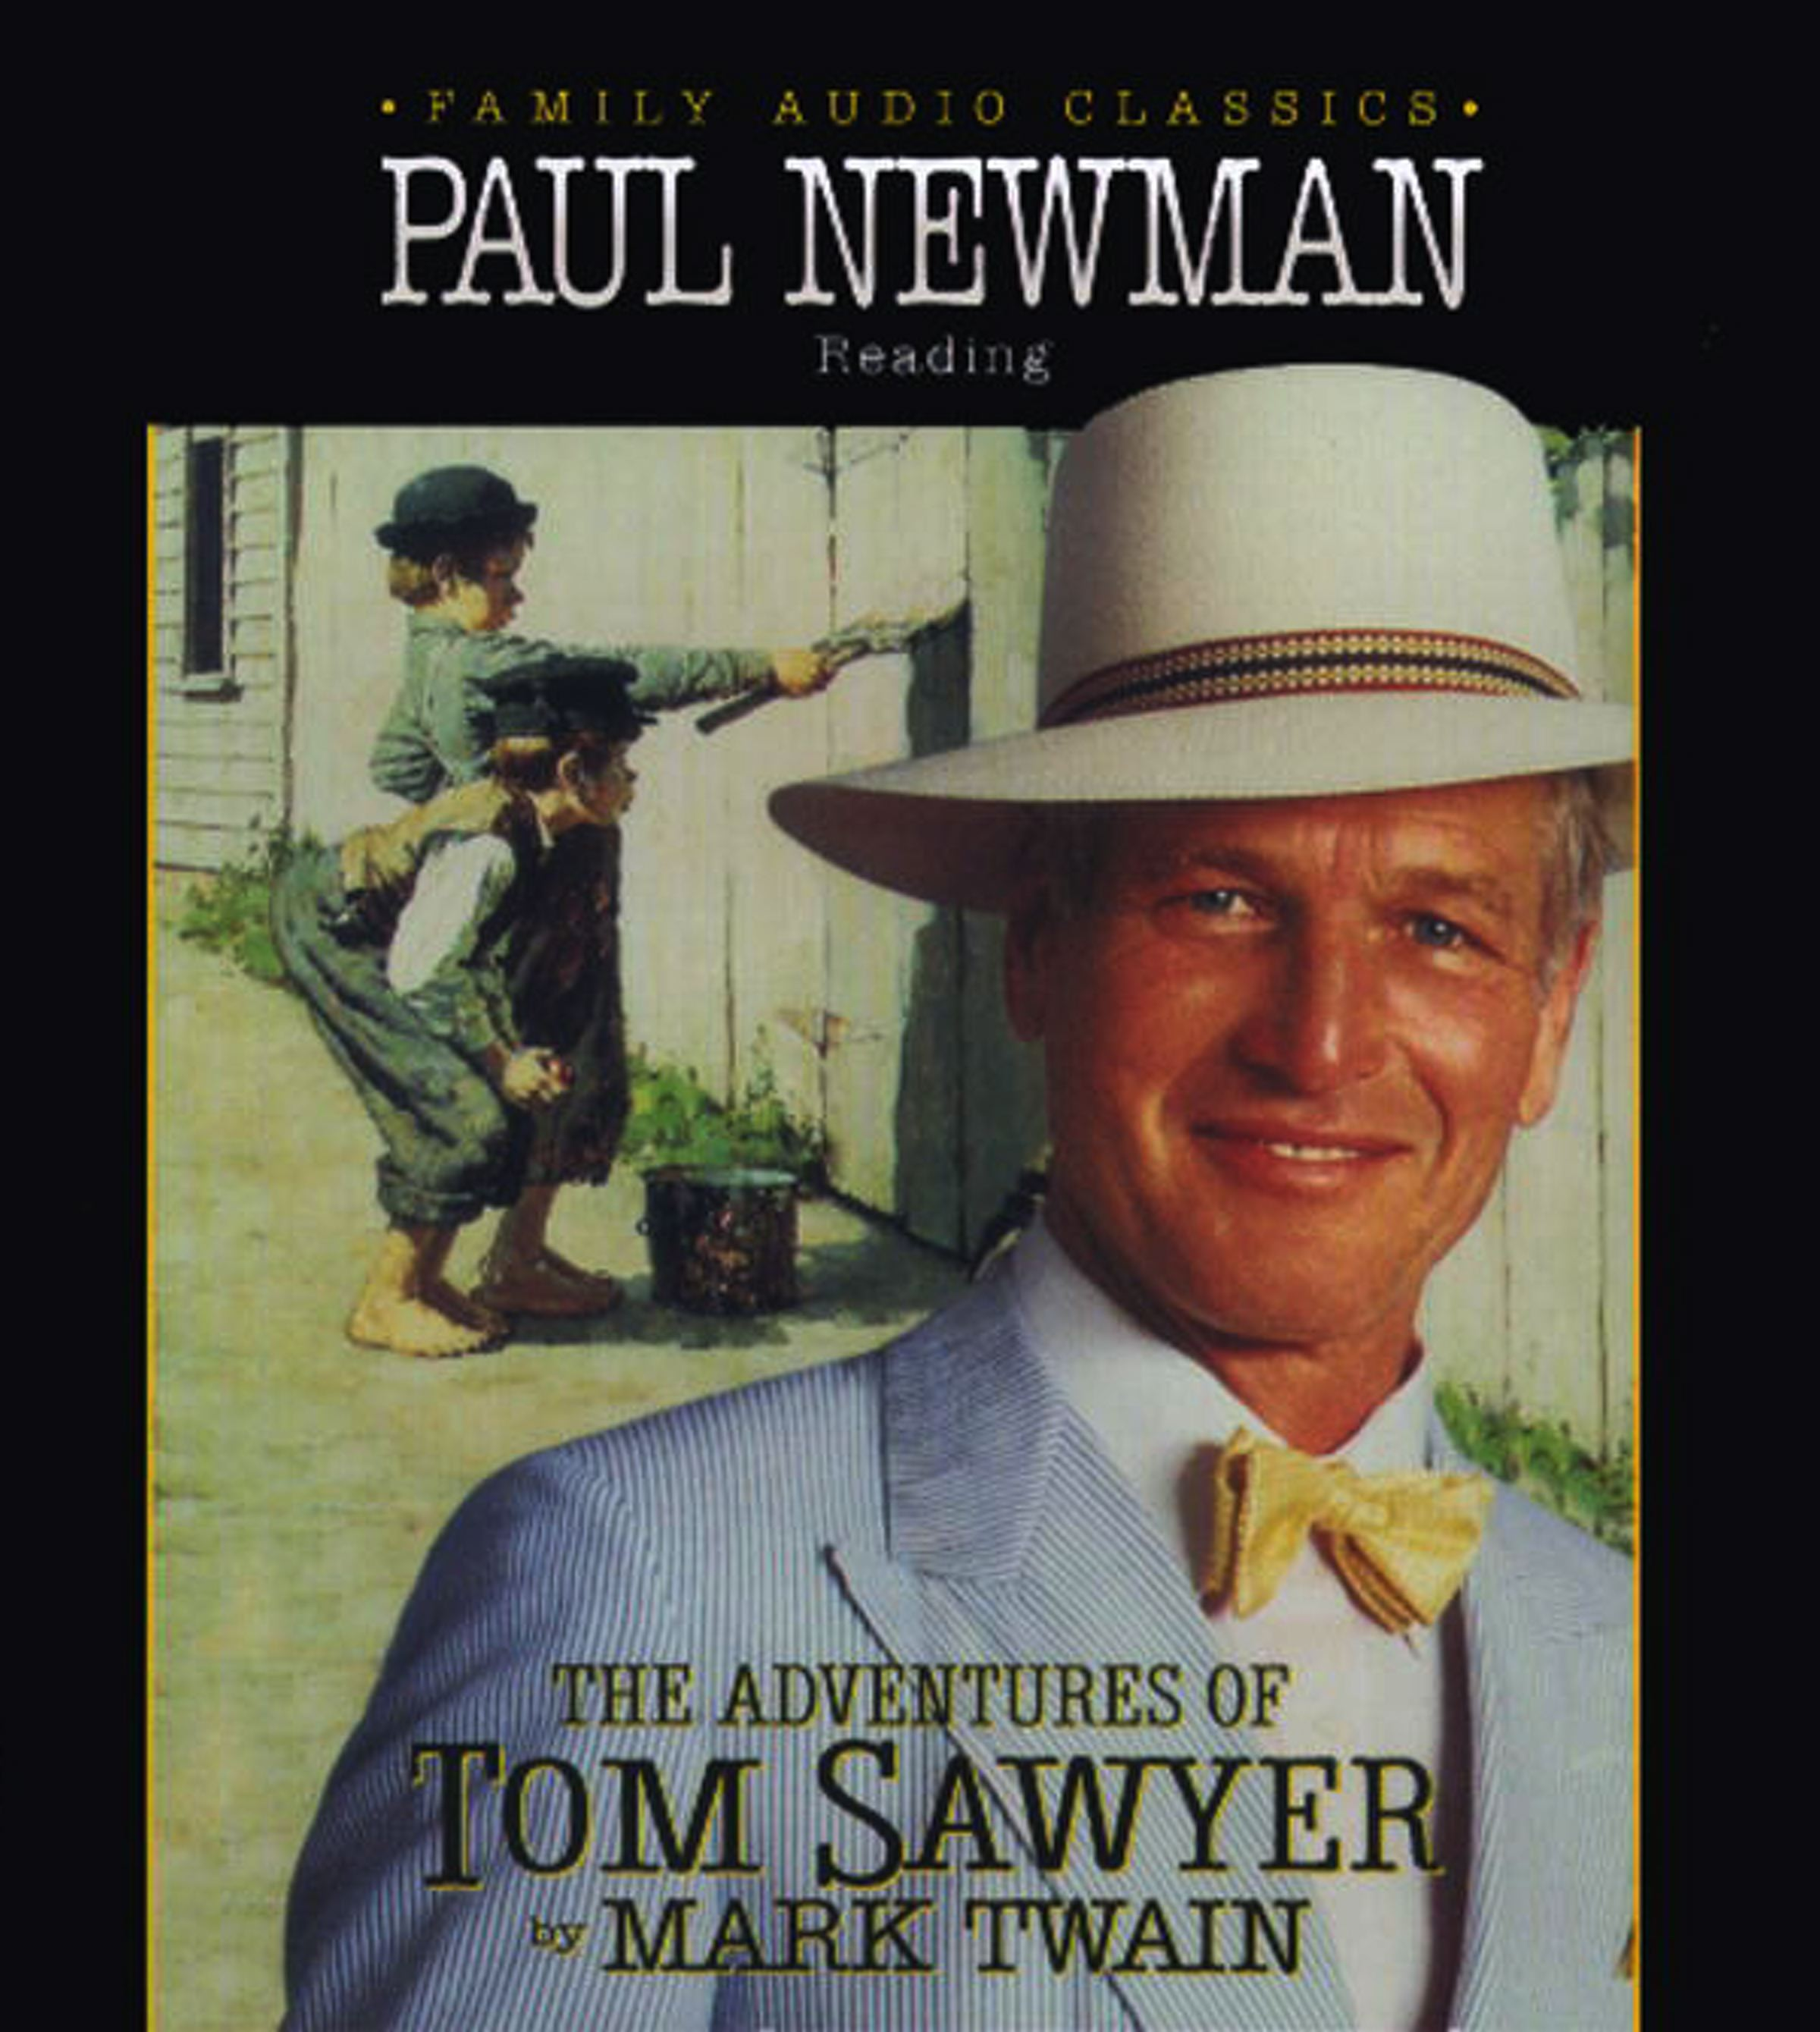 The Adventures of Tom Sawyer Audiobook by Mark Twain, Paul Newman  Official Publisher Page